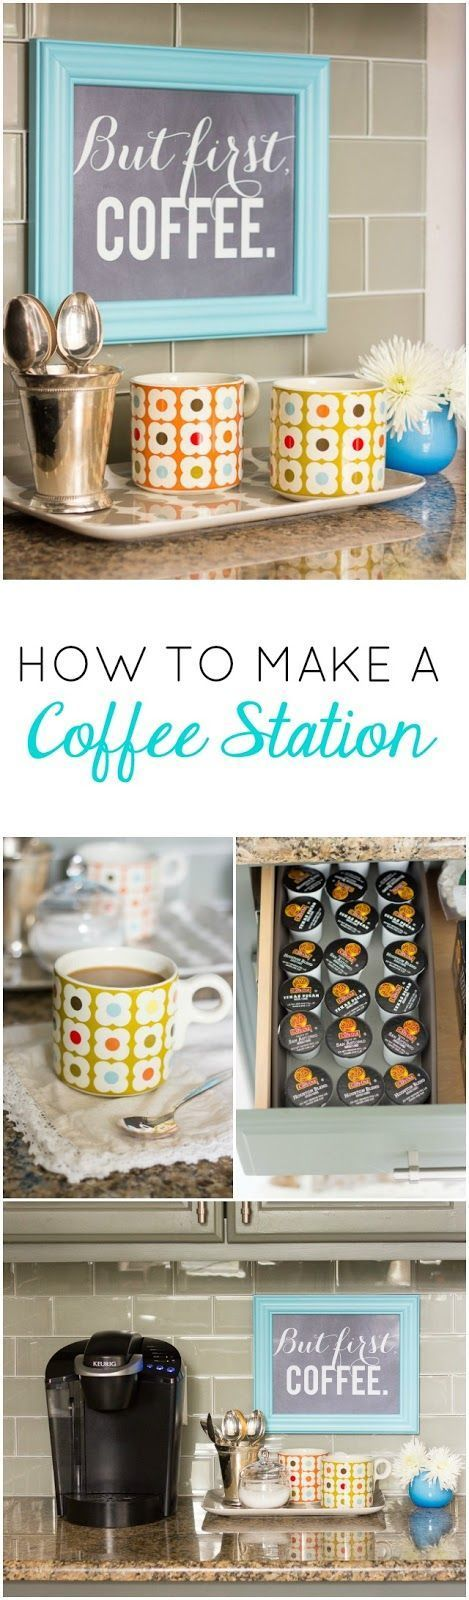 DIY Coffee Station | Design Improvised                                                                                                                                                                                 More